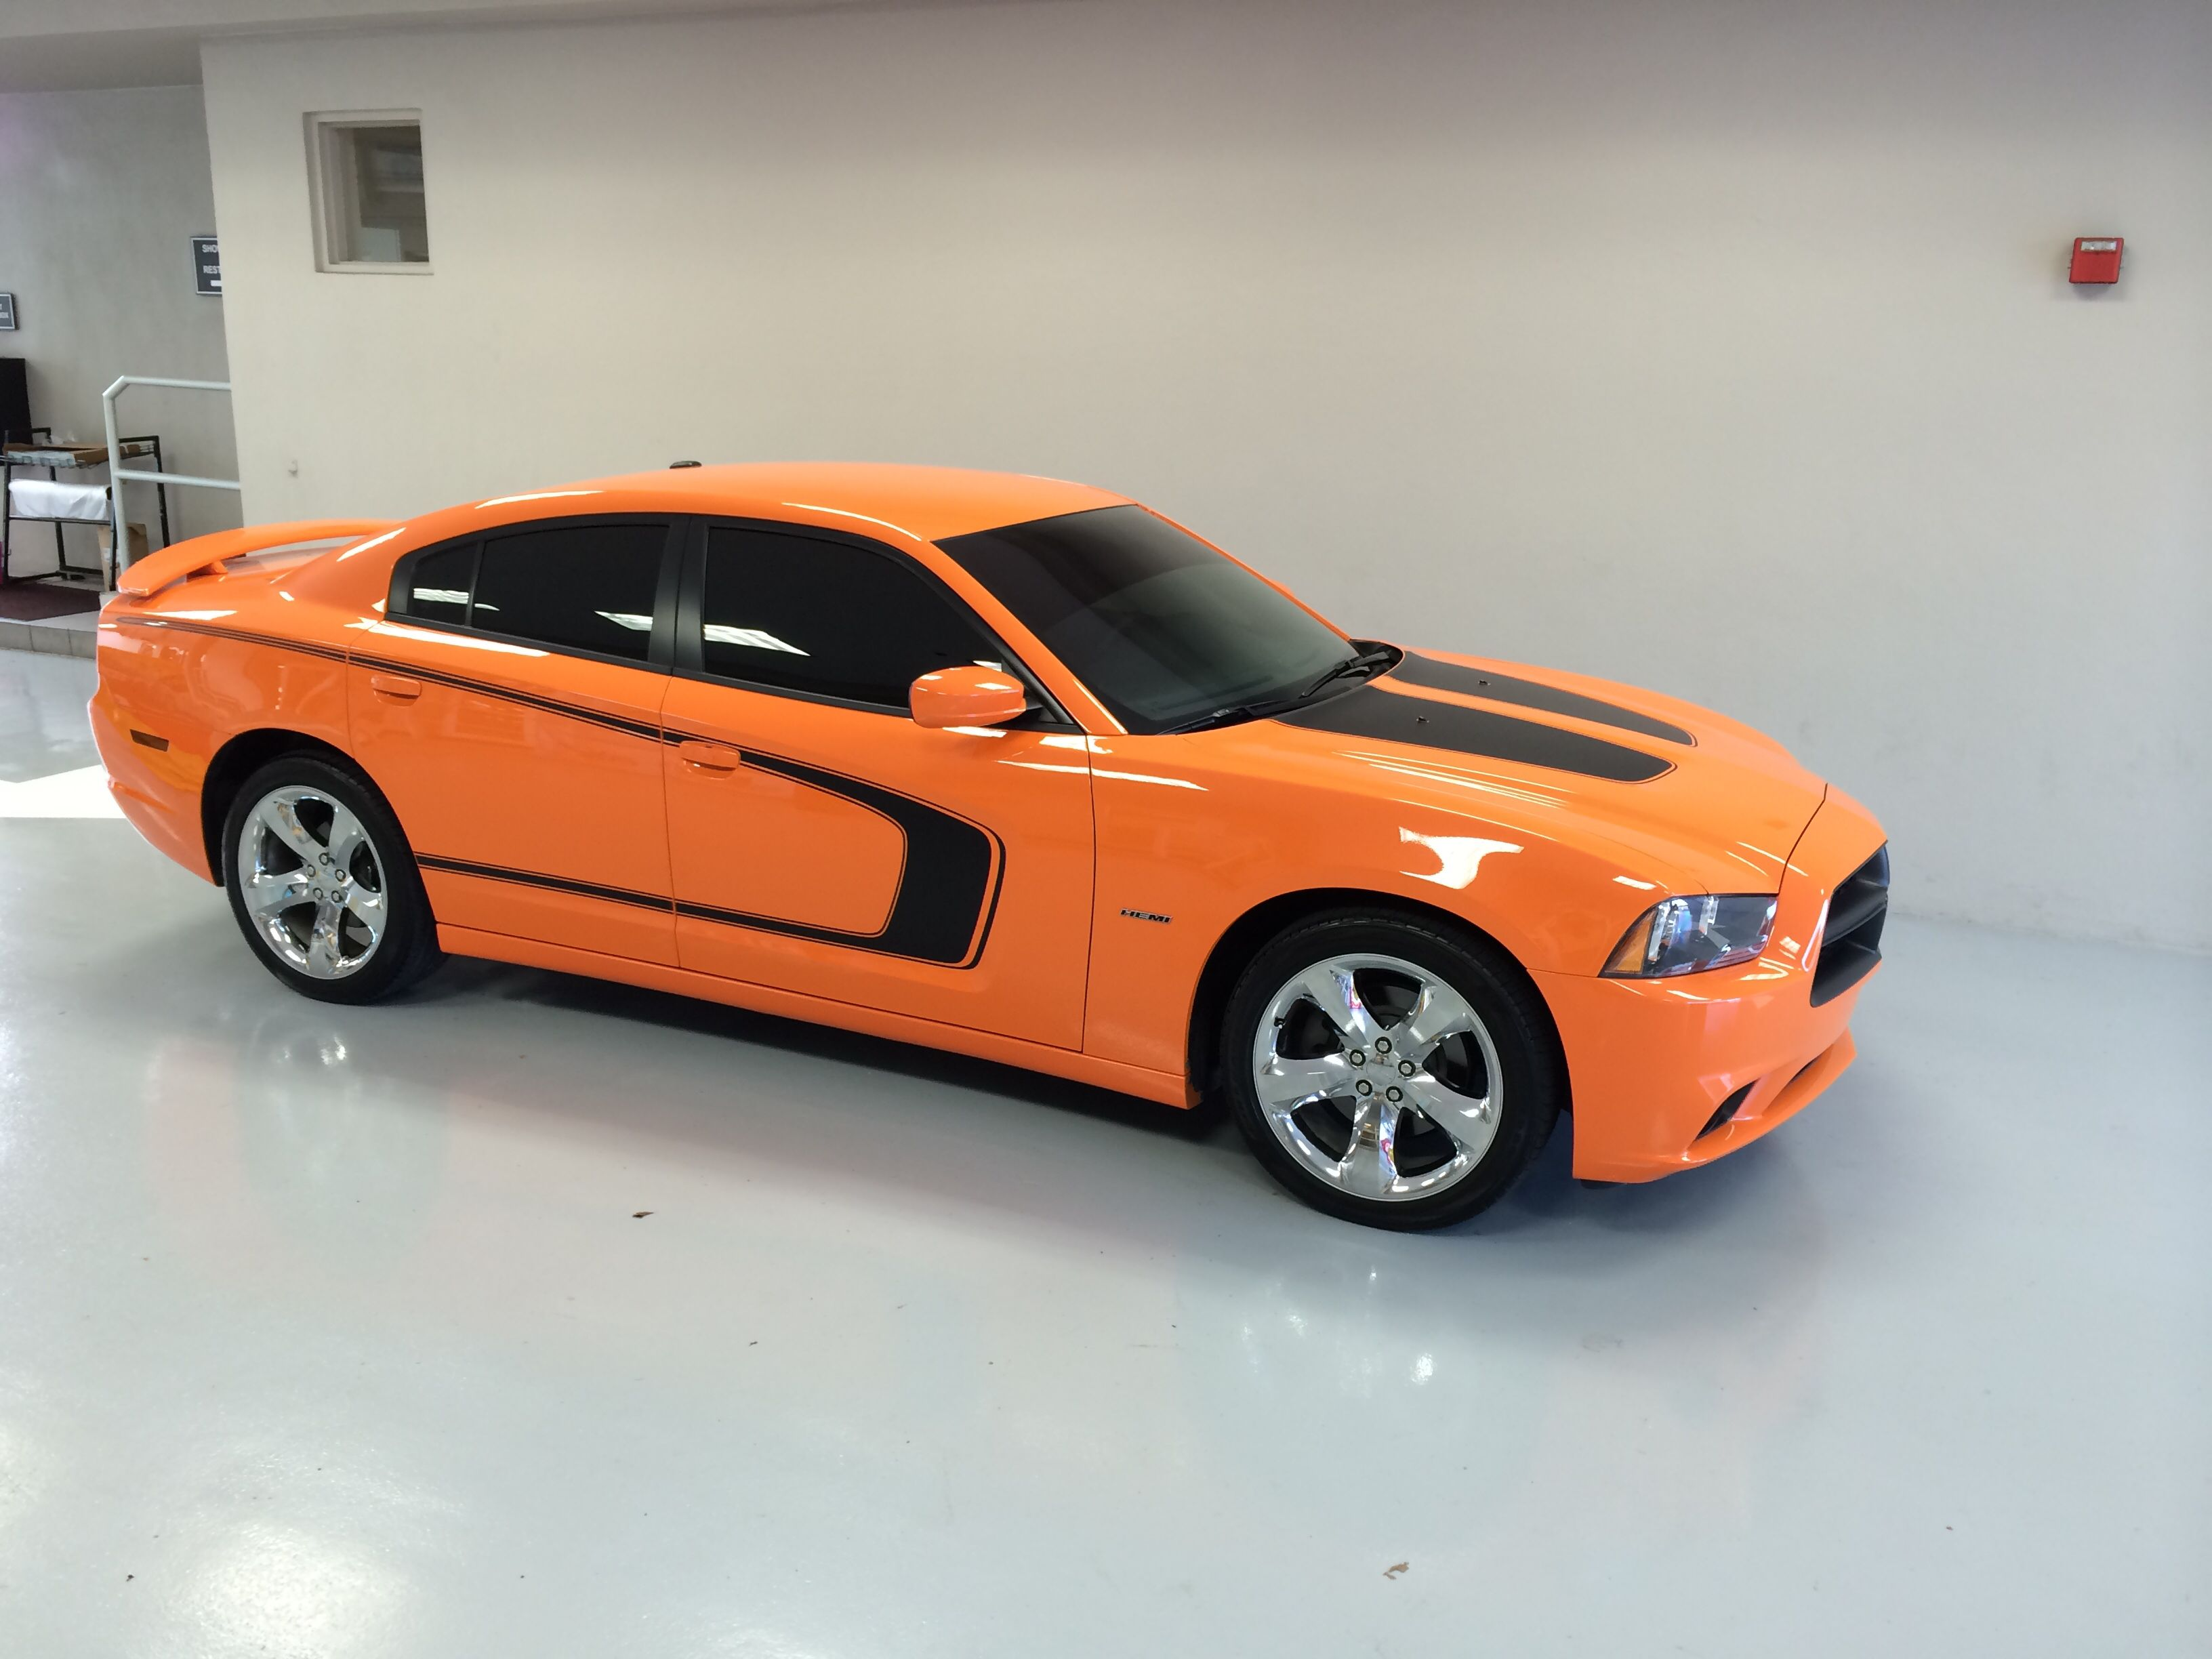 My Charger All Finished With New Pin Striping Hot Orange 2014 Dodge Charger Rt Hemi Dodge Charger 2014 Dodge Charger Rt 2014 Dodge Charger